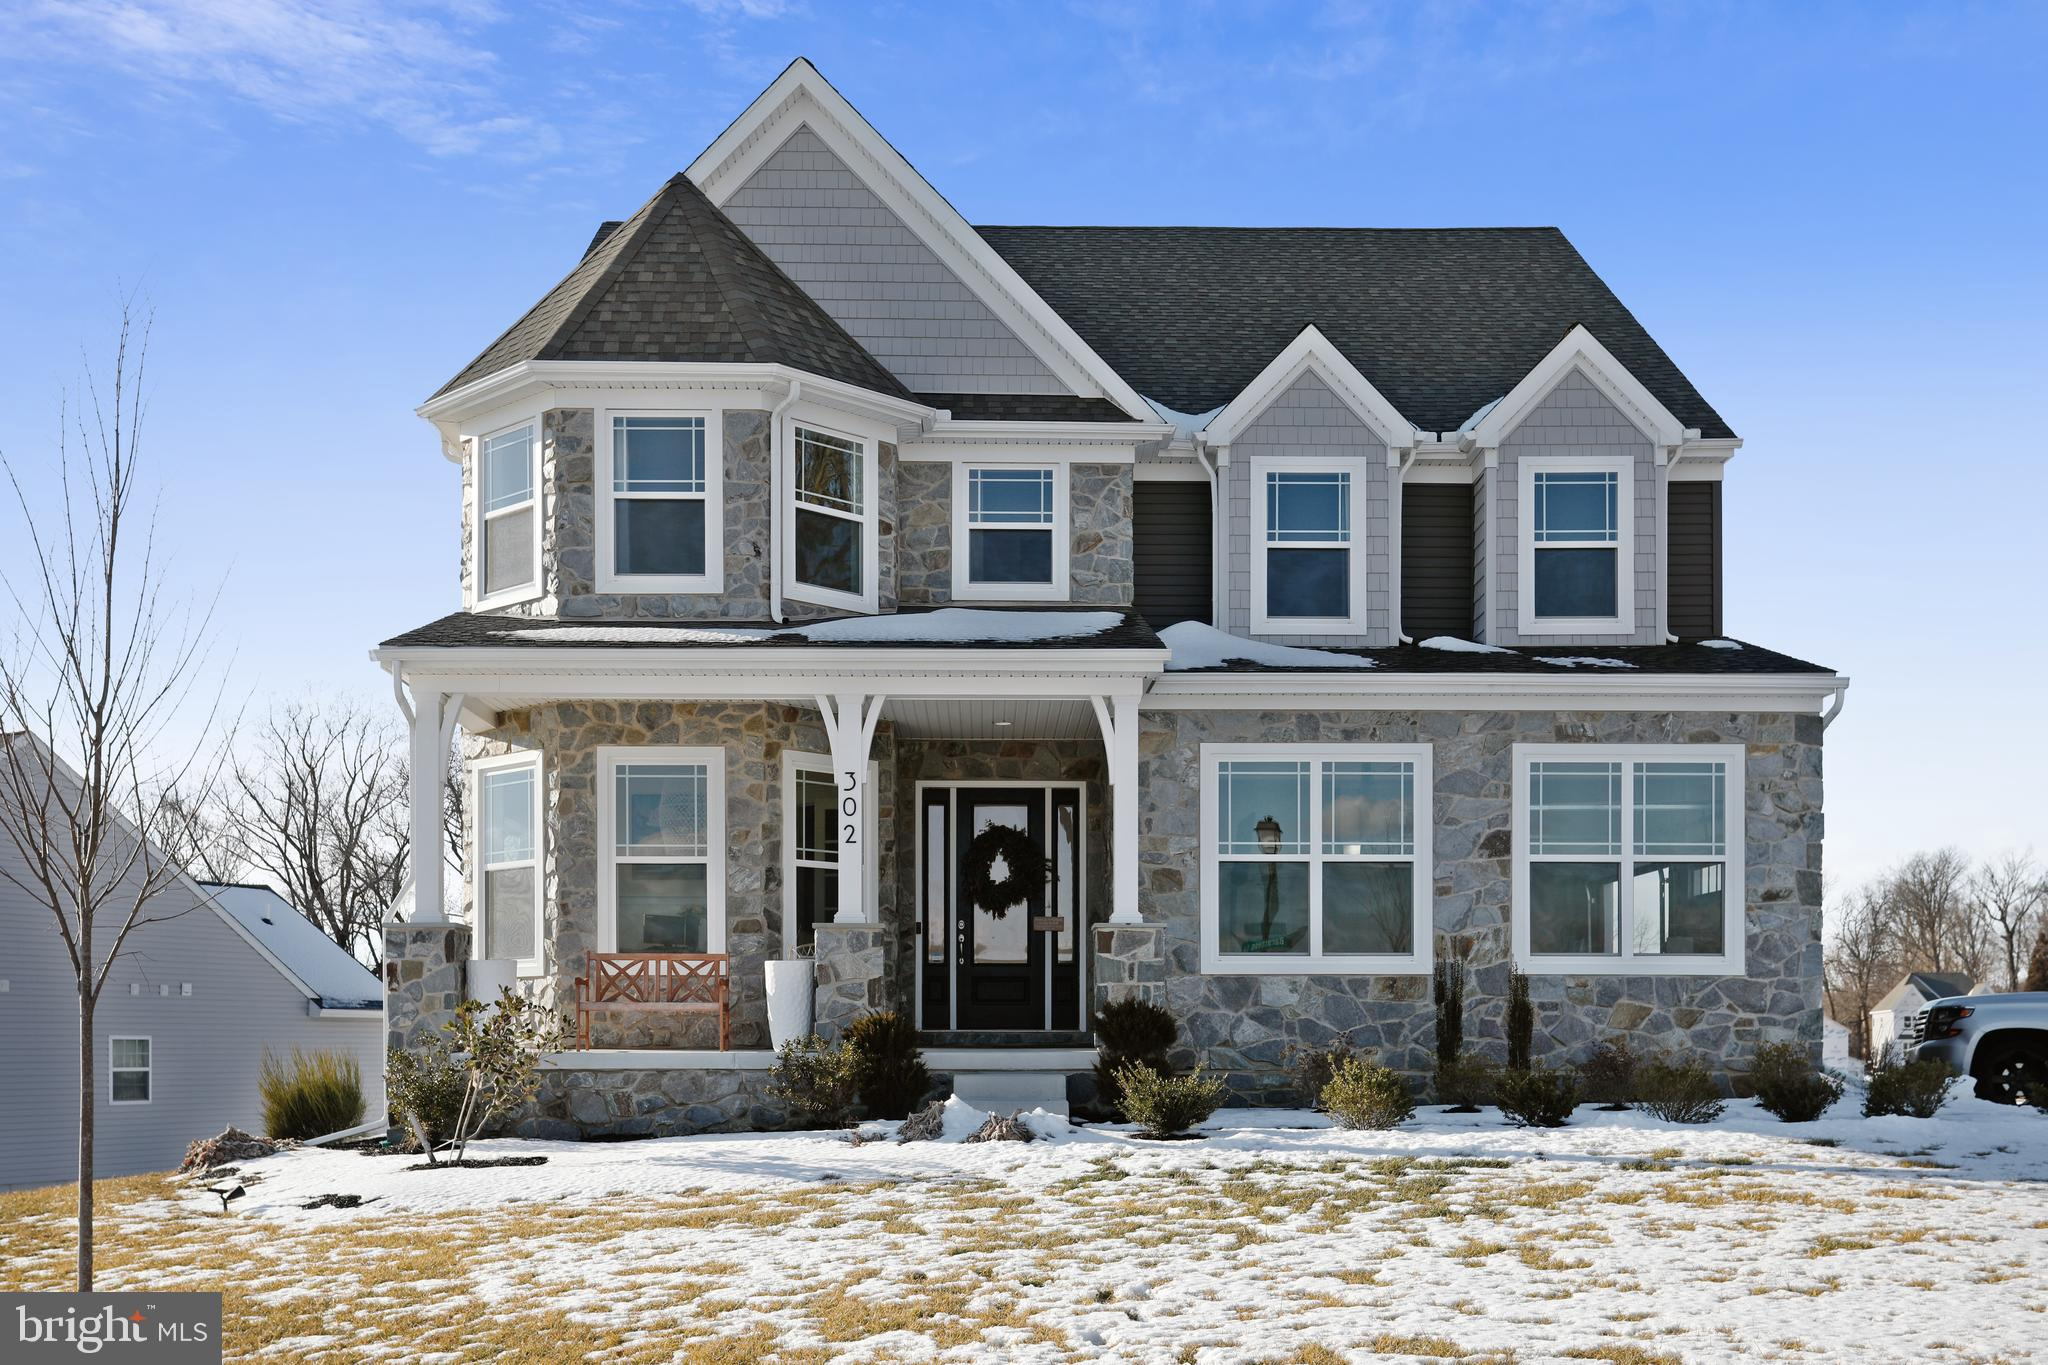 Welcome to this stunning sunlit Covington style home with the Heritage elevation situated on a corne